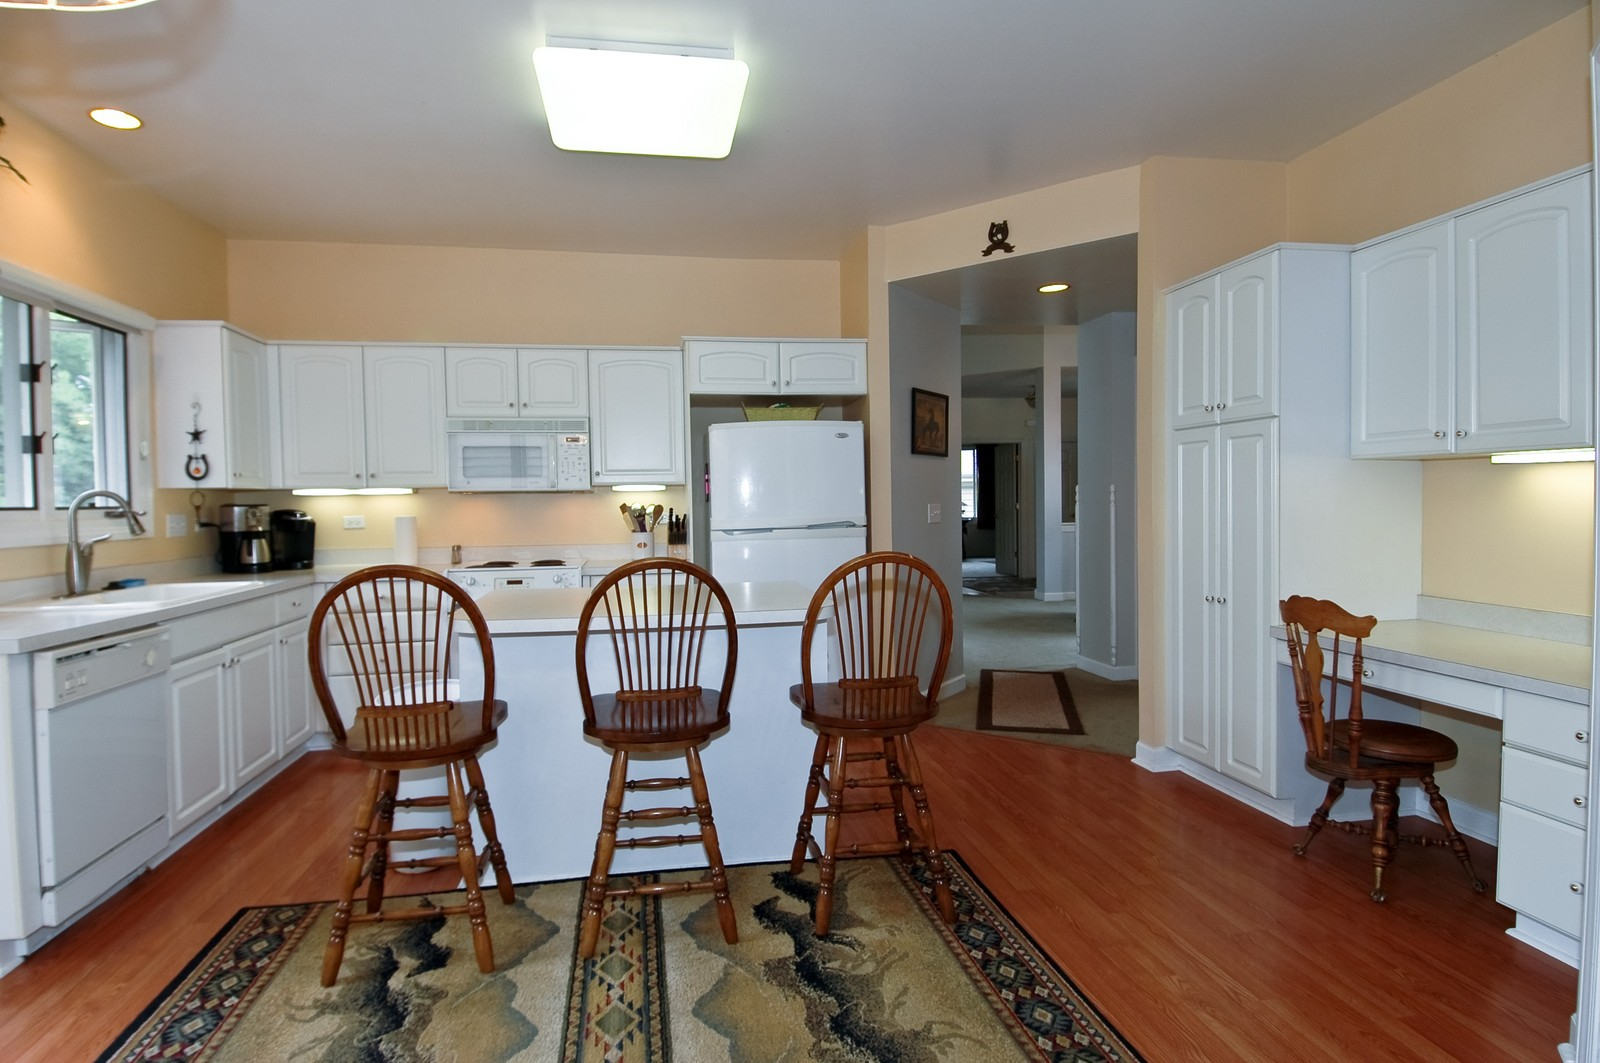 Real Estate Photography - 210 Course Dr, Lake in the Hills, IL, 60156 - Kitchen